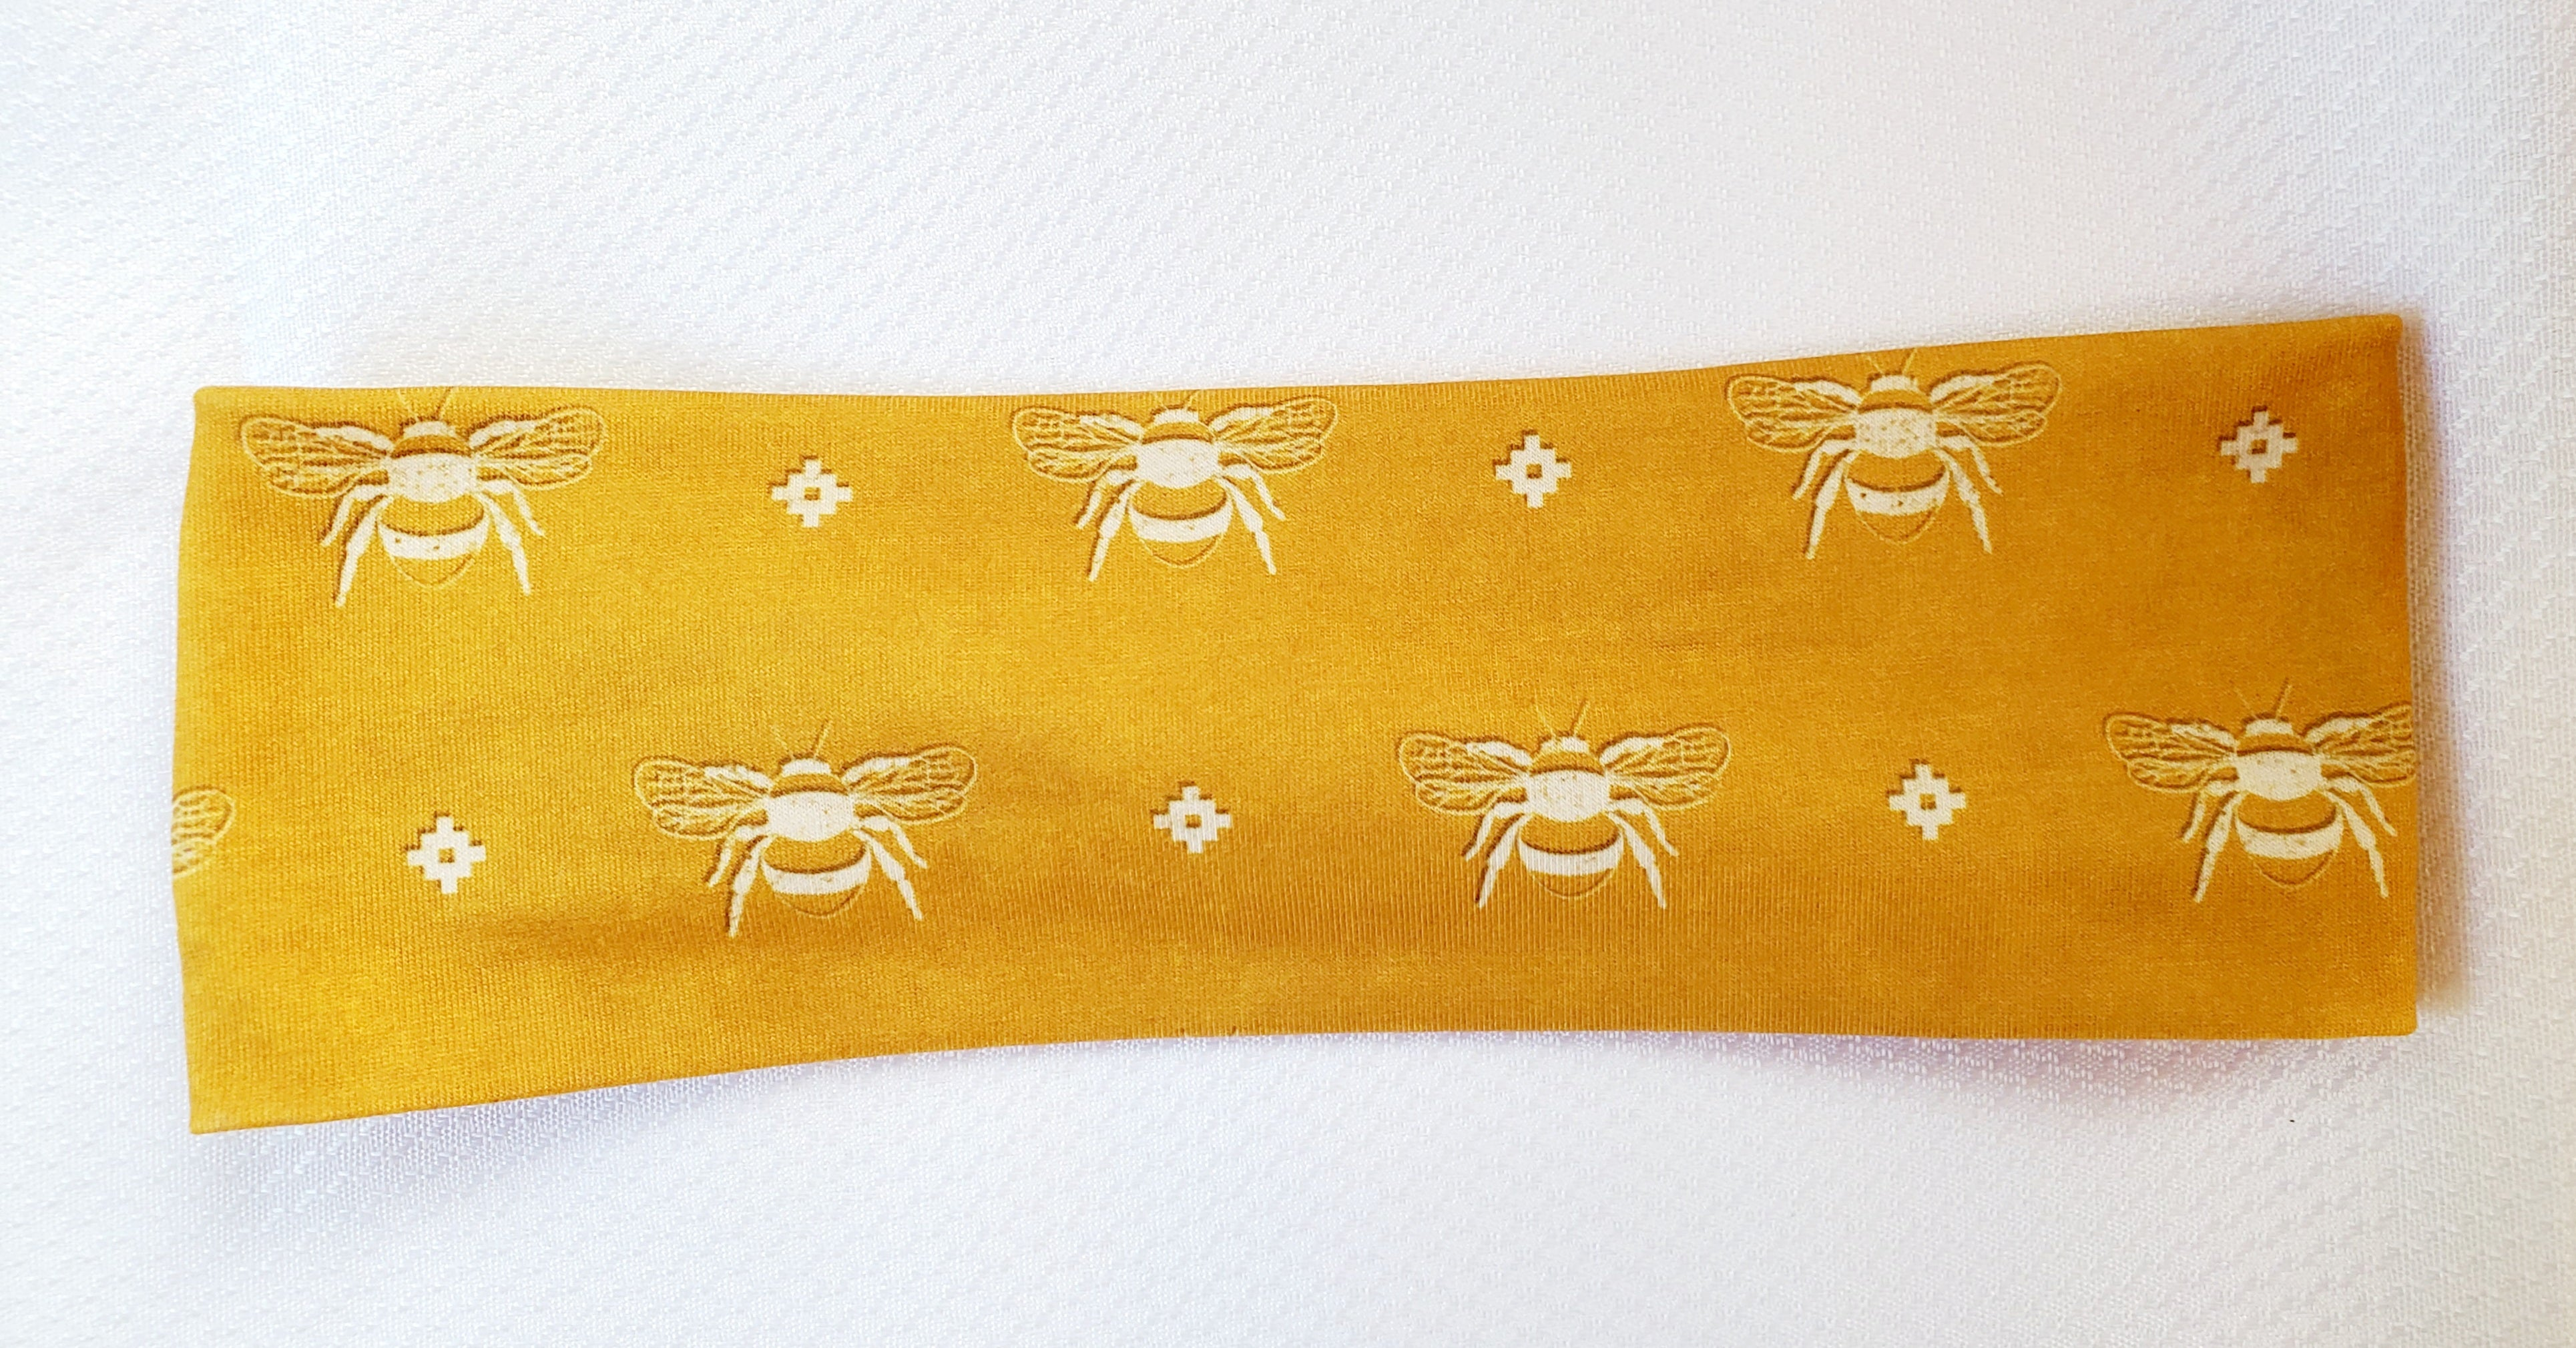 Retro Bees - Headband Happy AK